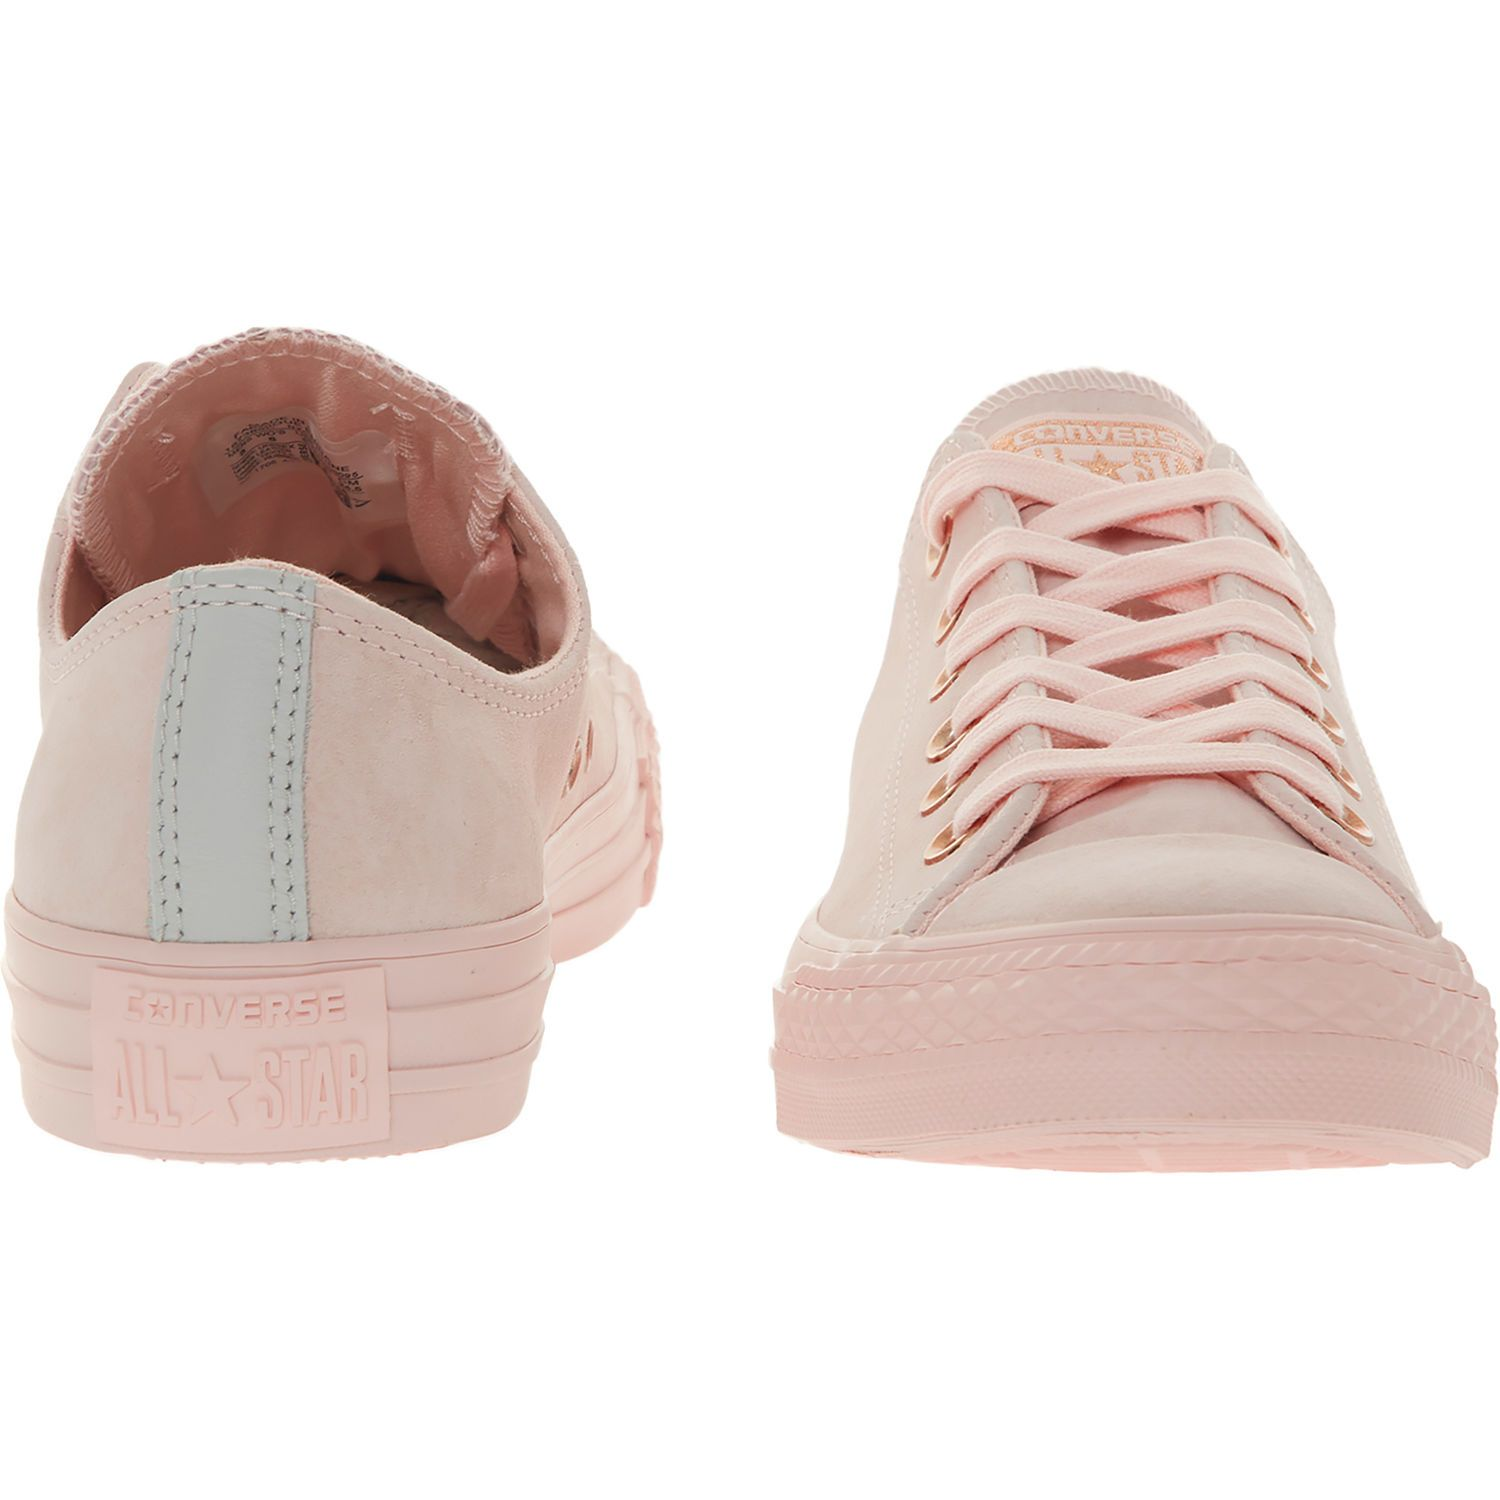 81adb7170cb5 Pink Suede Leather Trainers - Trainers - Shoes - Women - TK Maxx ...